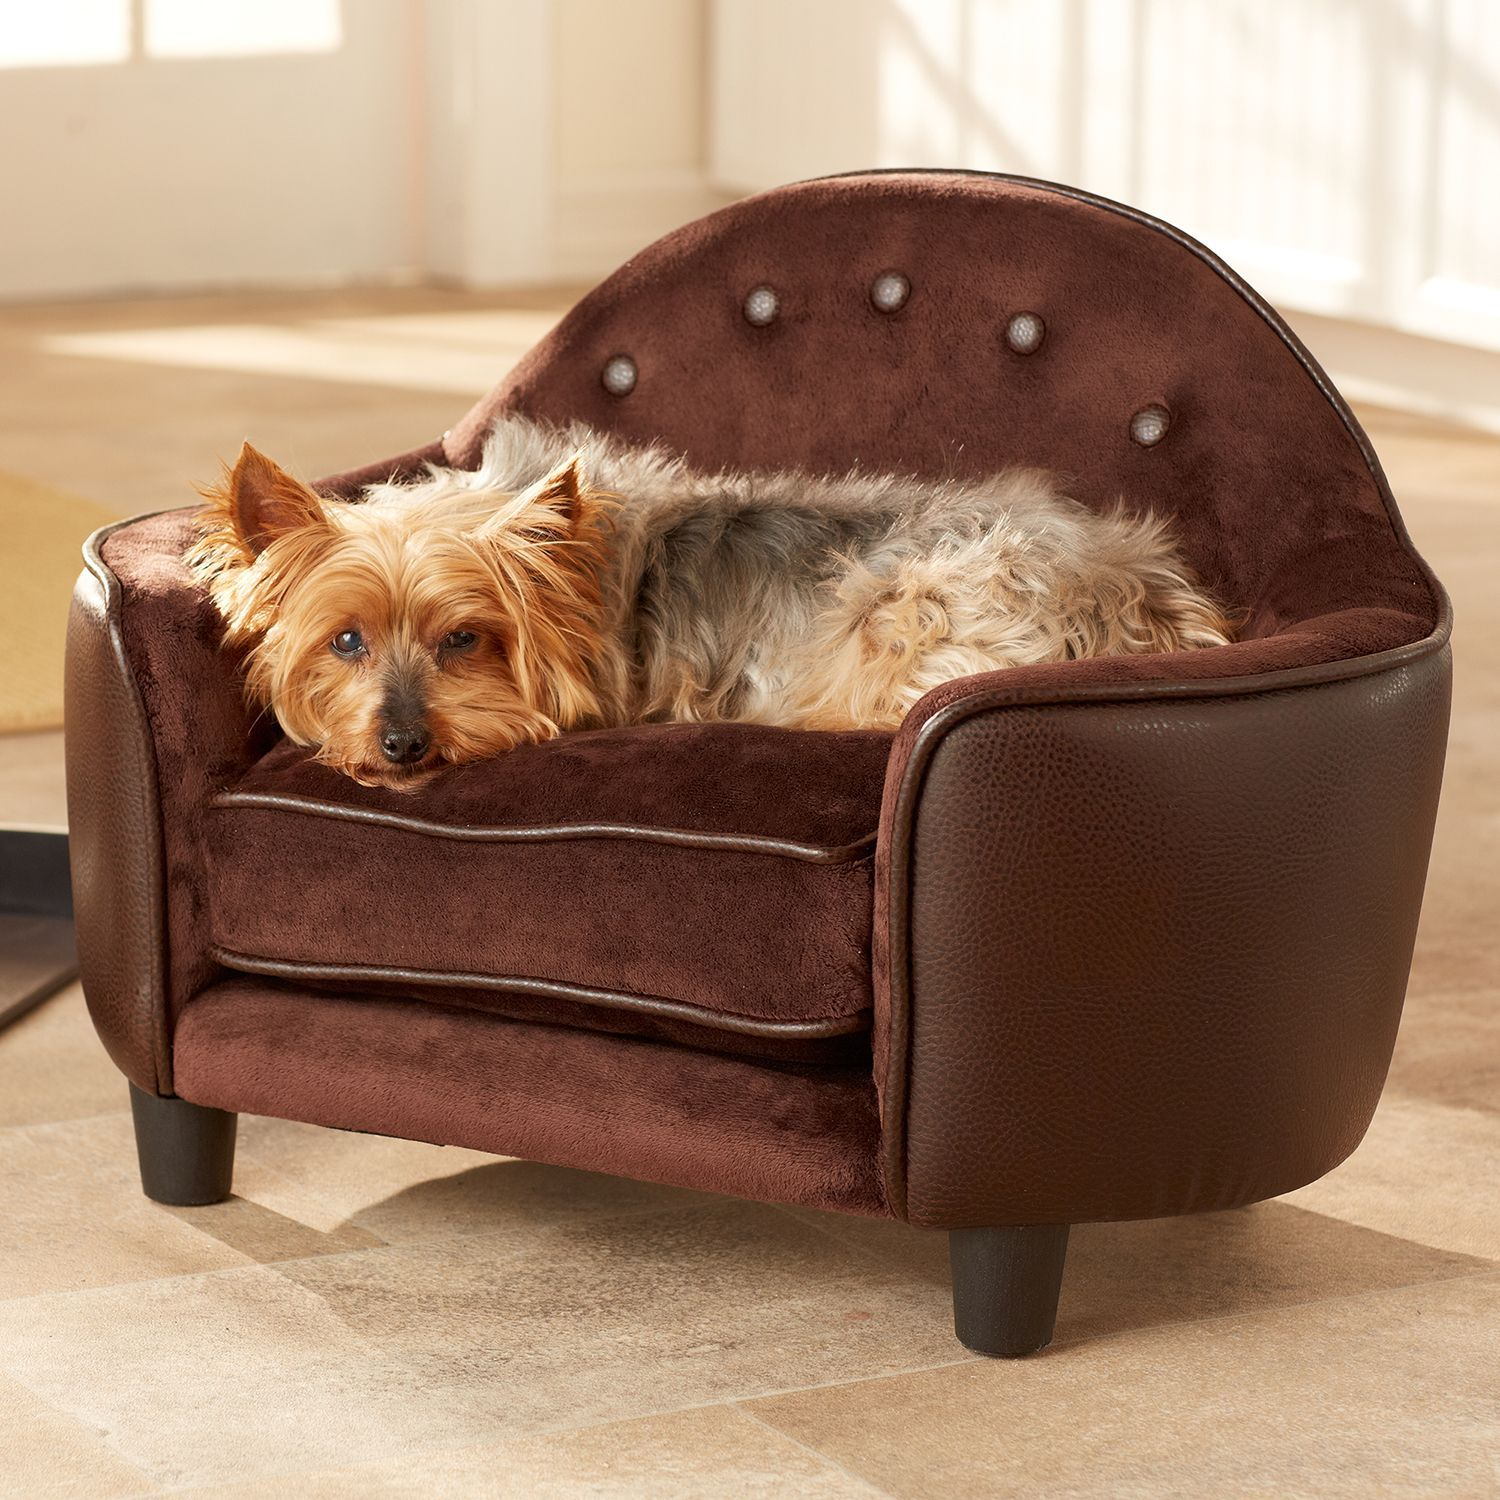 Overstock Com Online Shopping Bedding Furniture Electronics Jewelry Clothing More Dog Sofa Bed Dog Sofa Couch Pet Bed